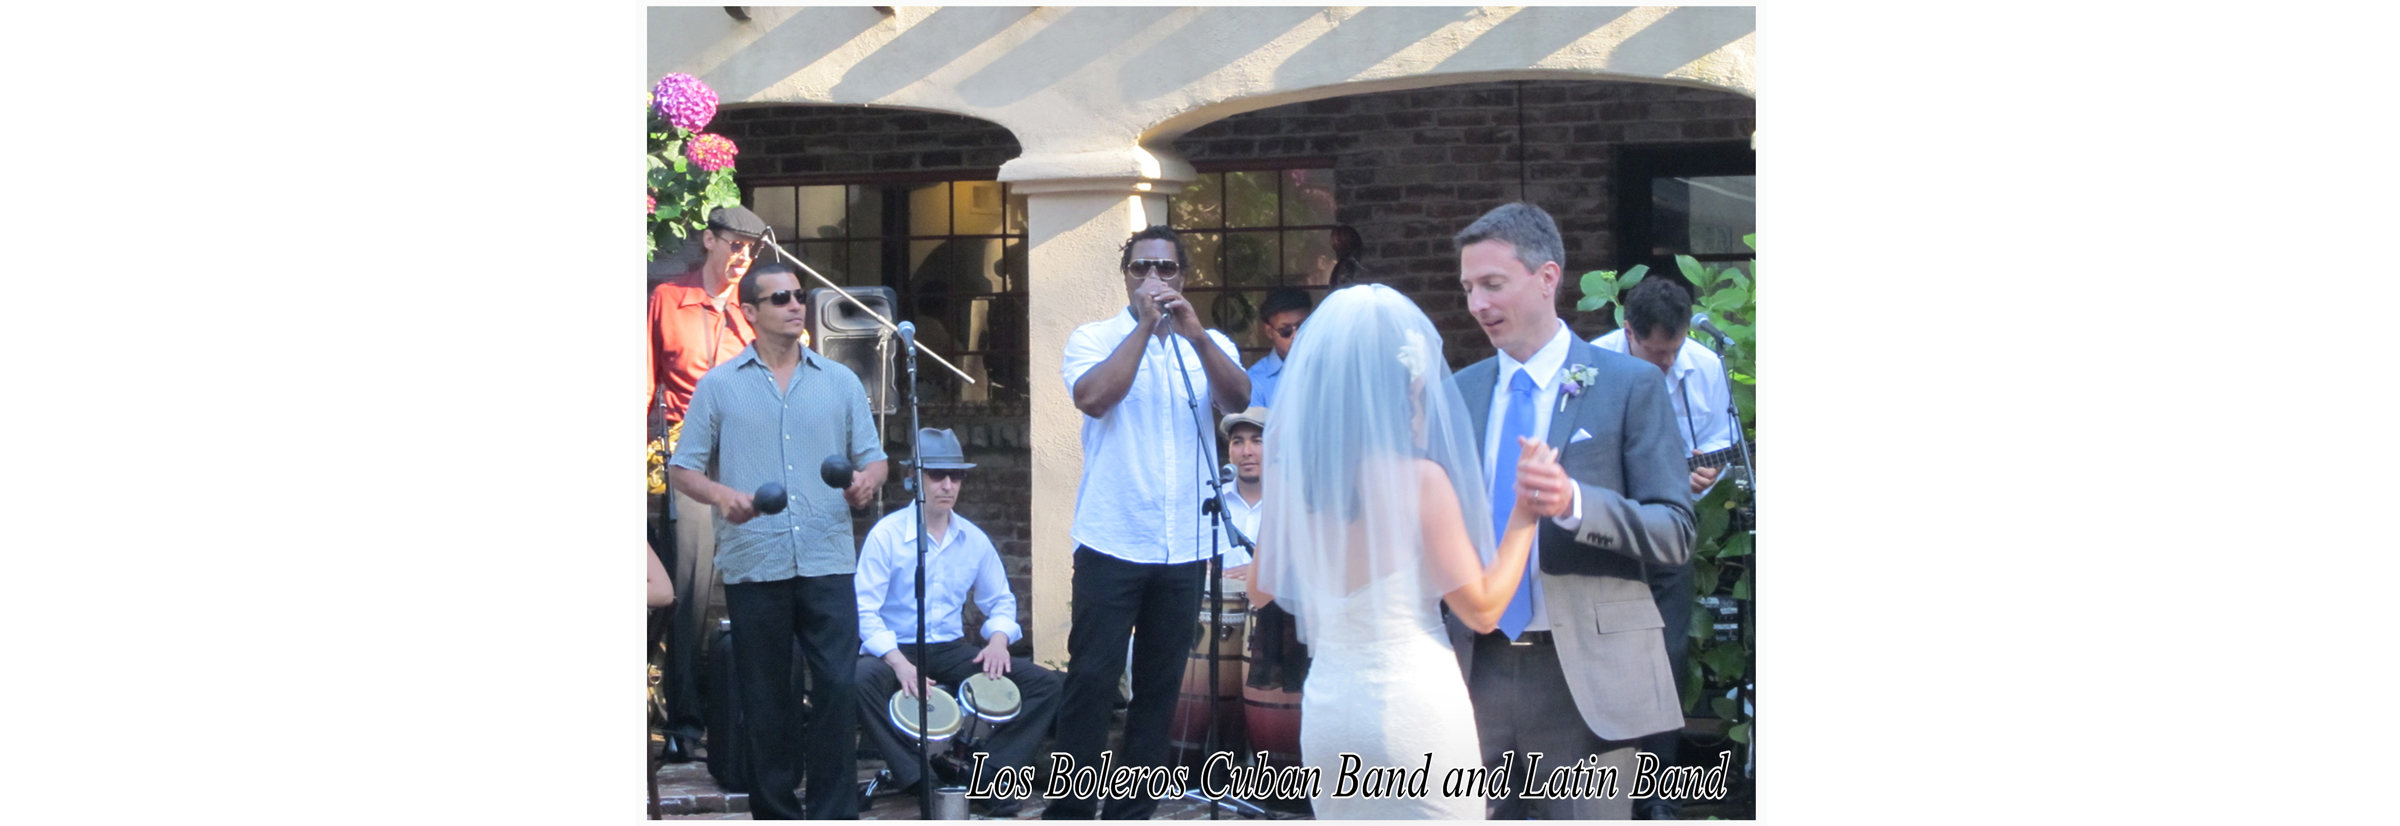 Cuban band for your wedding reception, Buena Vista Social Club, Latin band, salsa band